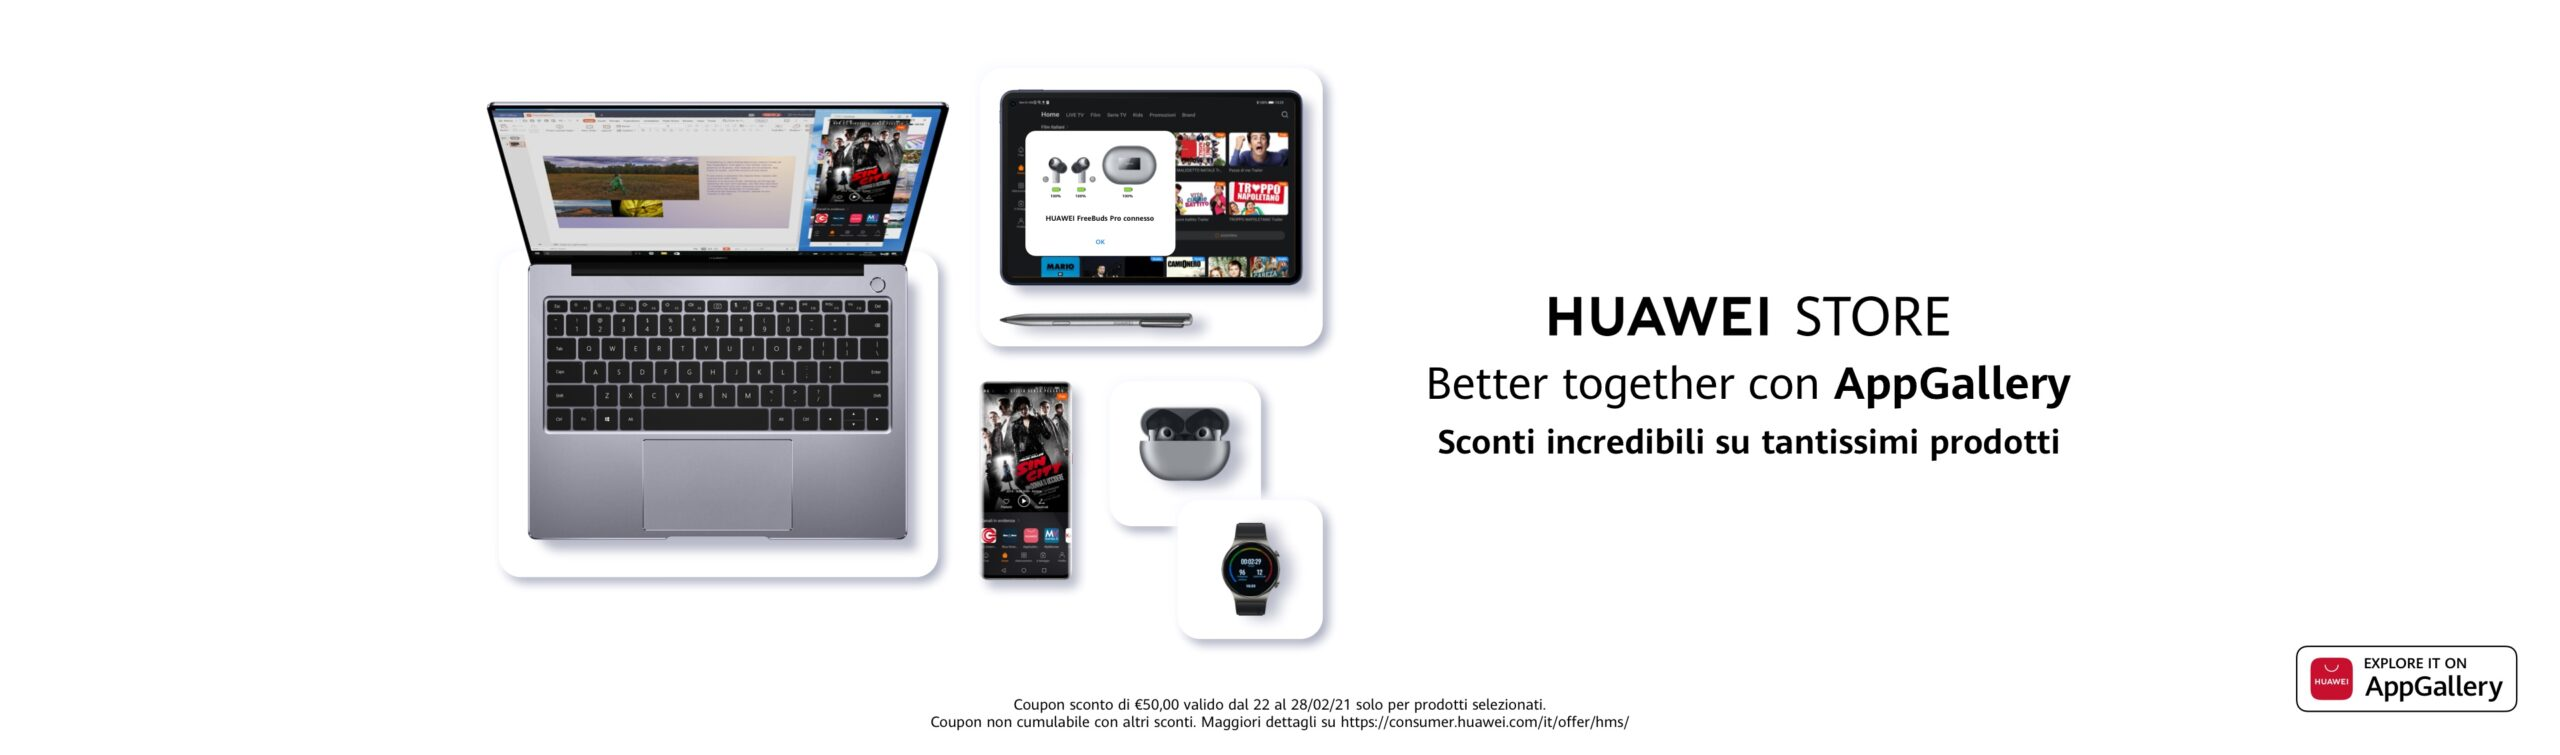 Offerte Better together with AppGallery Huawei Store